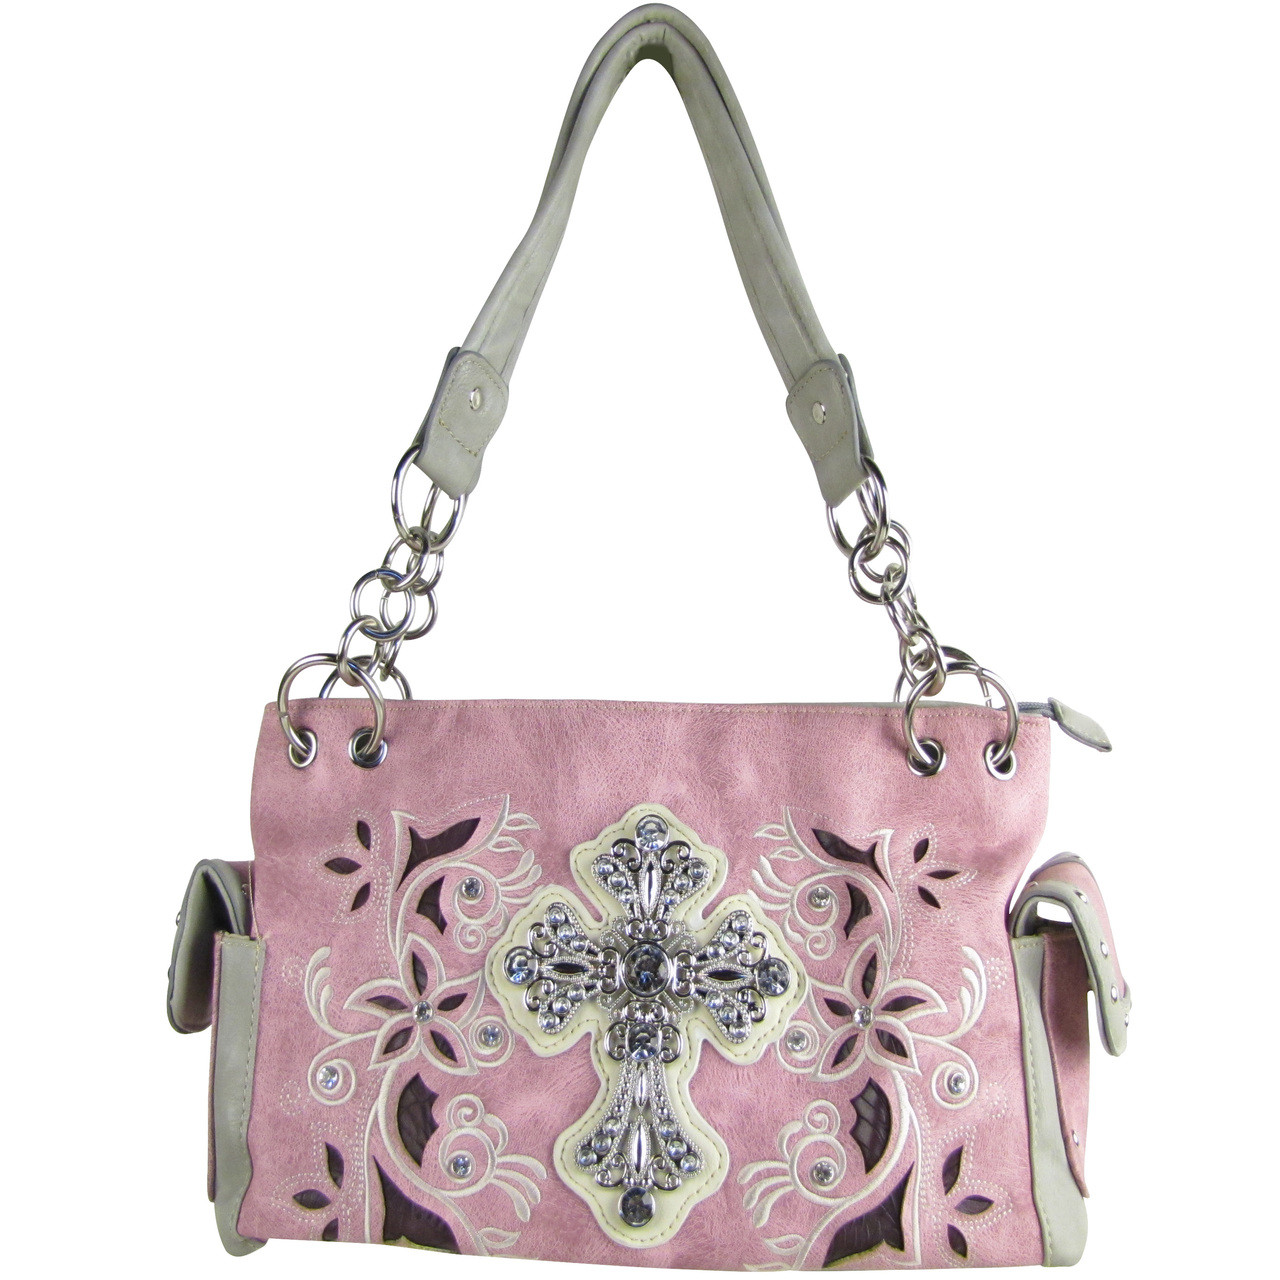 PINK FLOWER RHINESTONE CROSS LOOK SHOULDER HANDBAG HB1-84LCRPNK